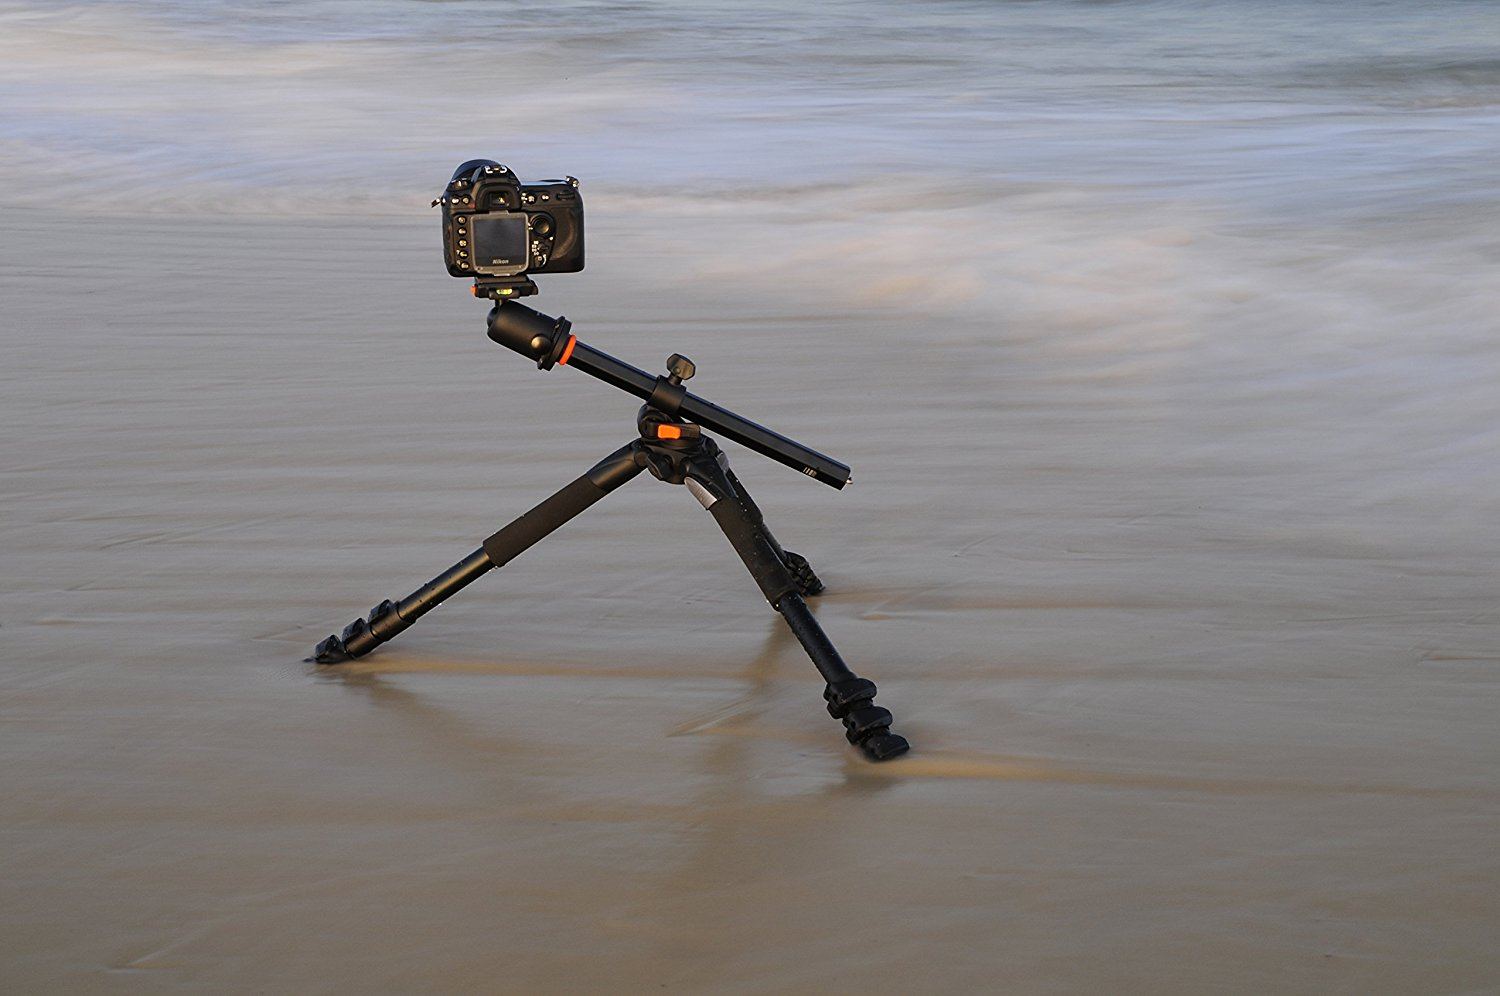 Vanguard Veo 2 235ab Aluminum Tripod With Ball Head Red Editors Tip Its Also A Good Idea To Buy Solid As Well Find Help You Take Your Photography The Next Level